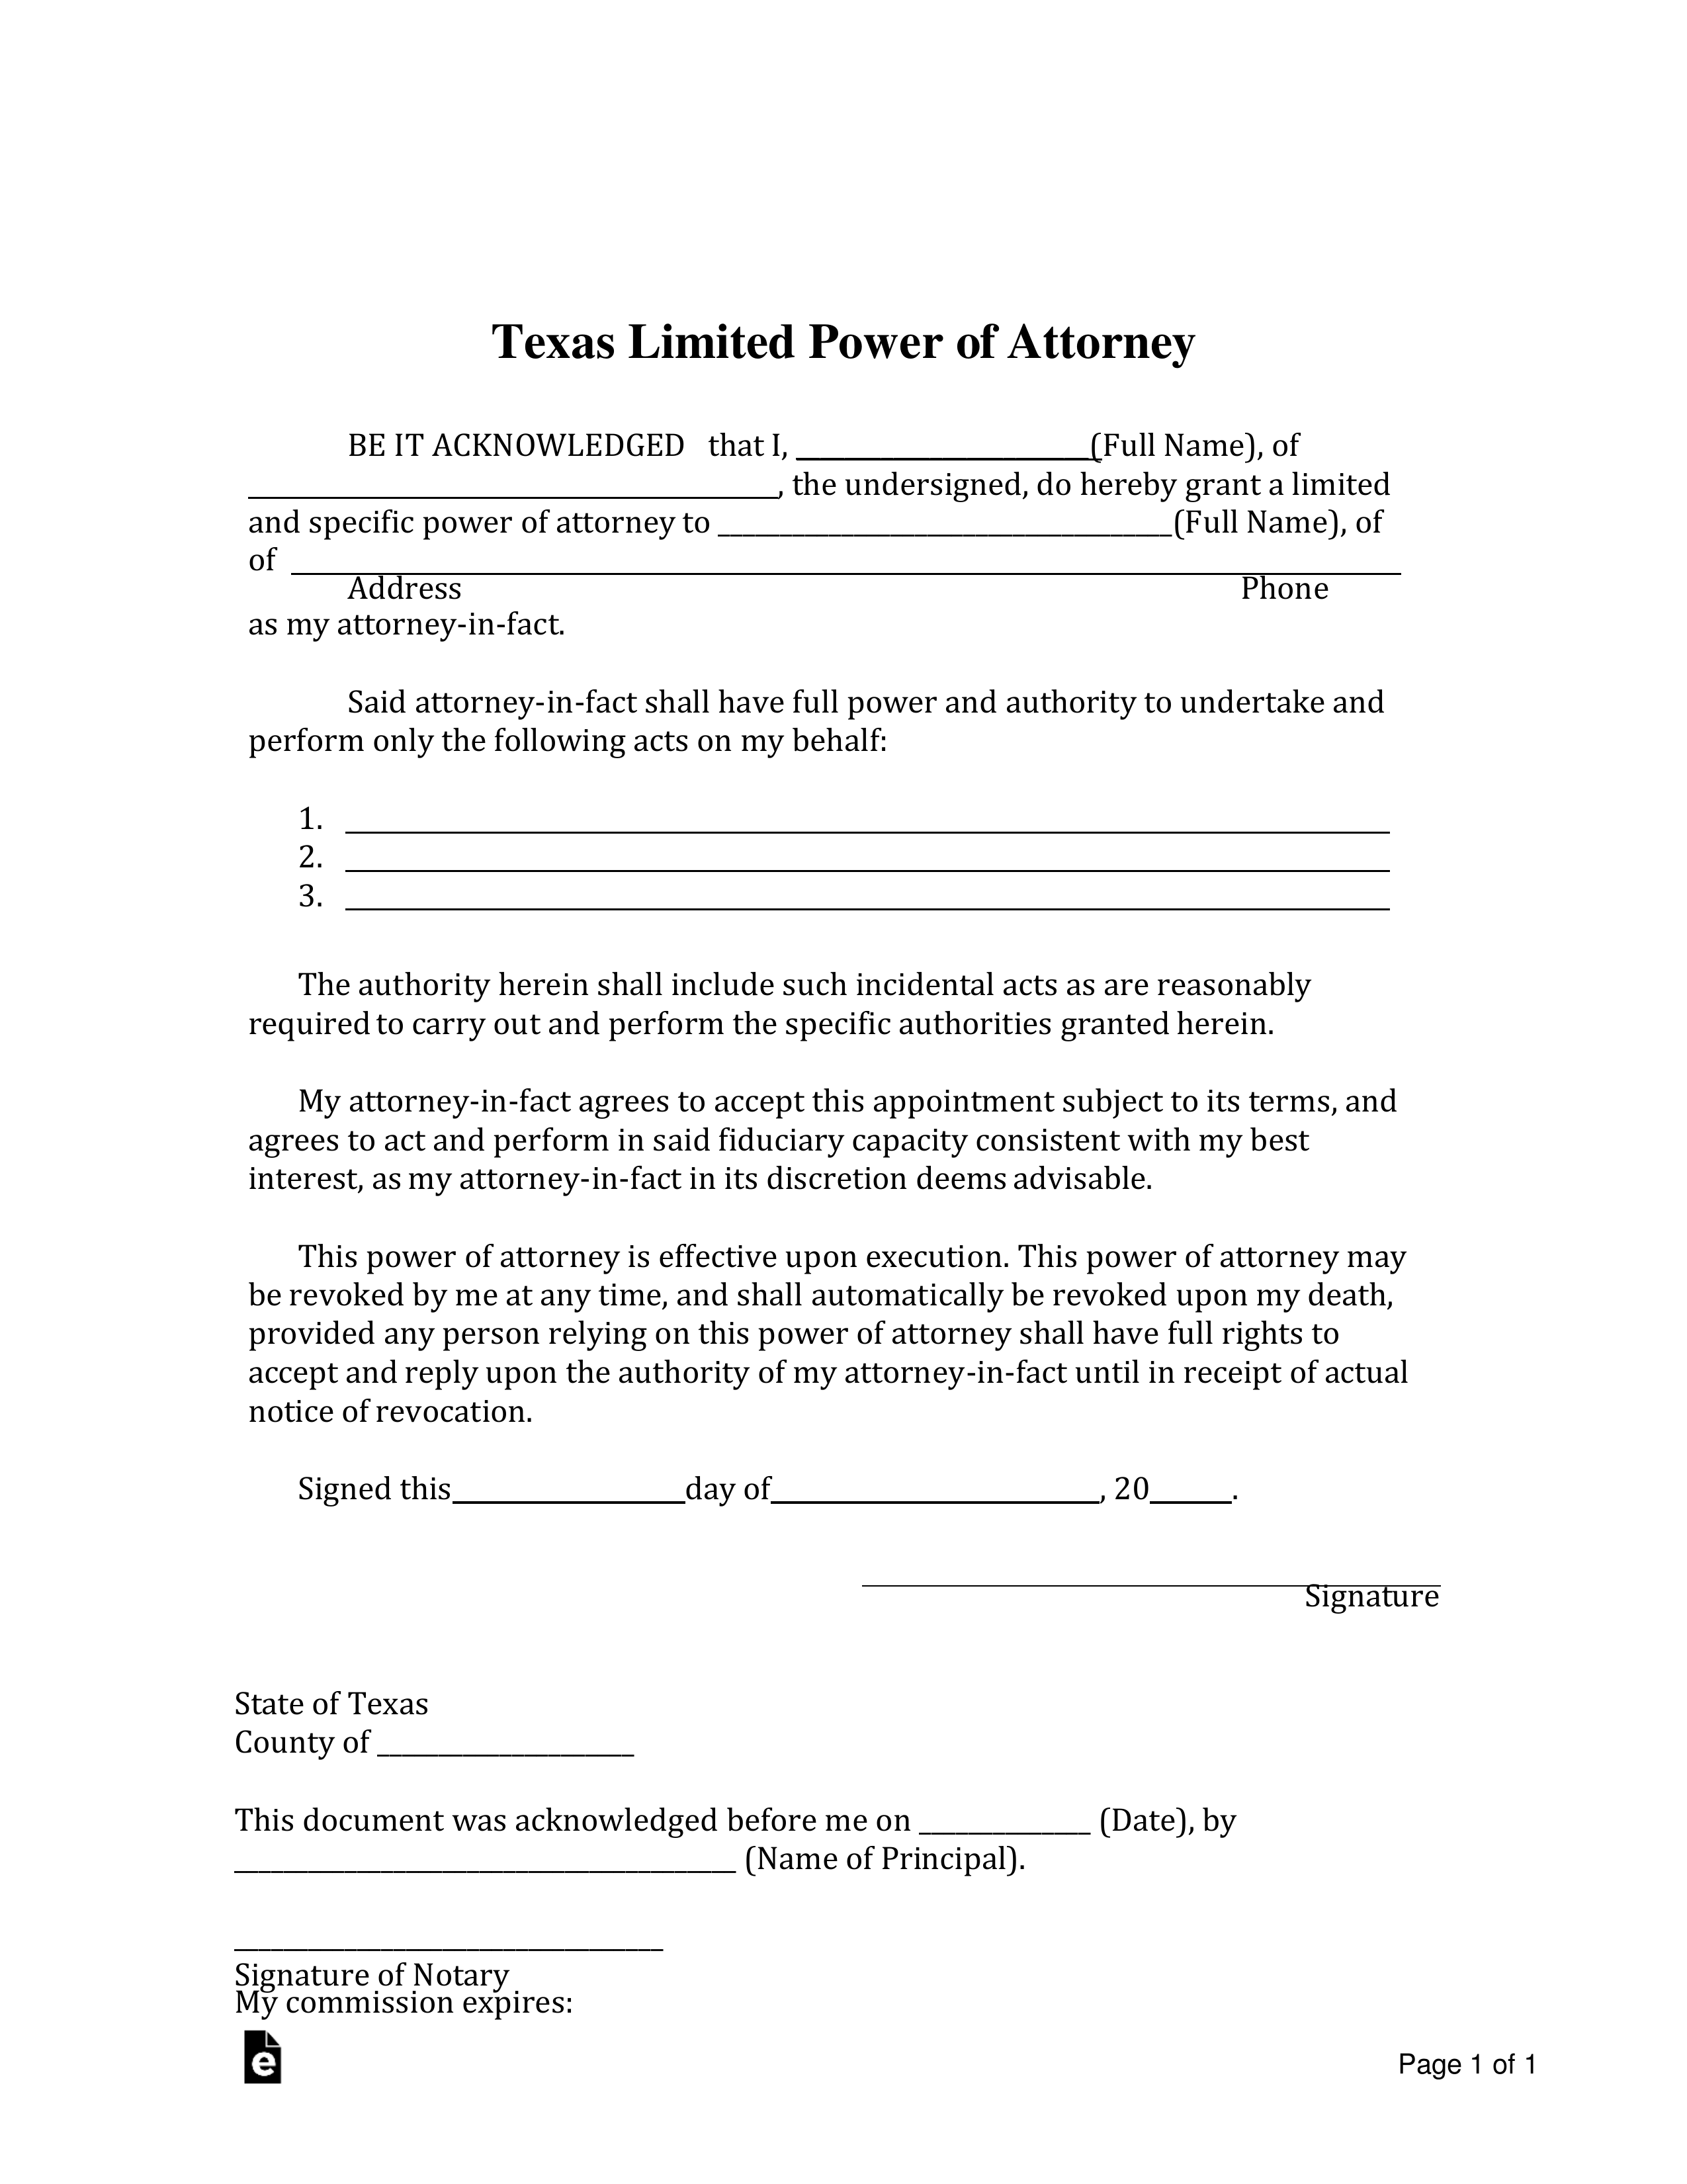 Eliminate Your Fears And Doubts About Power Of Attorney